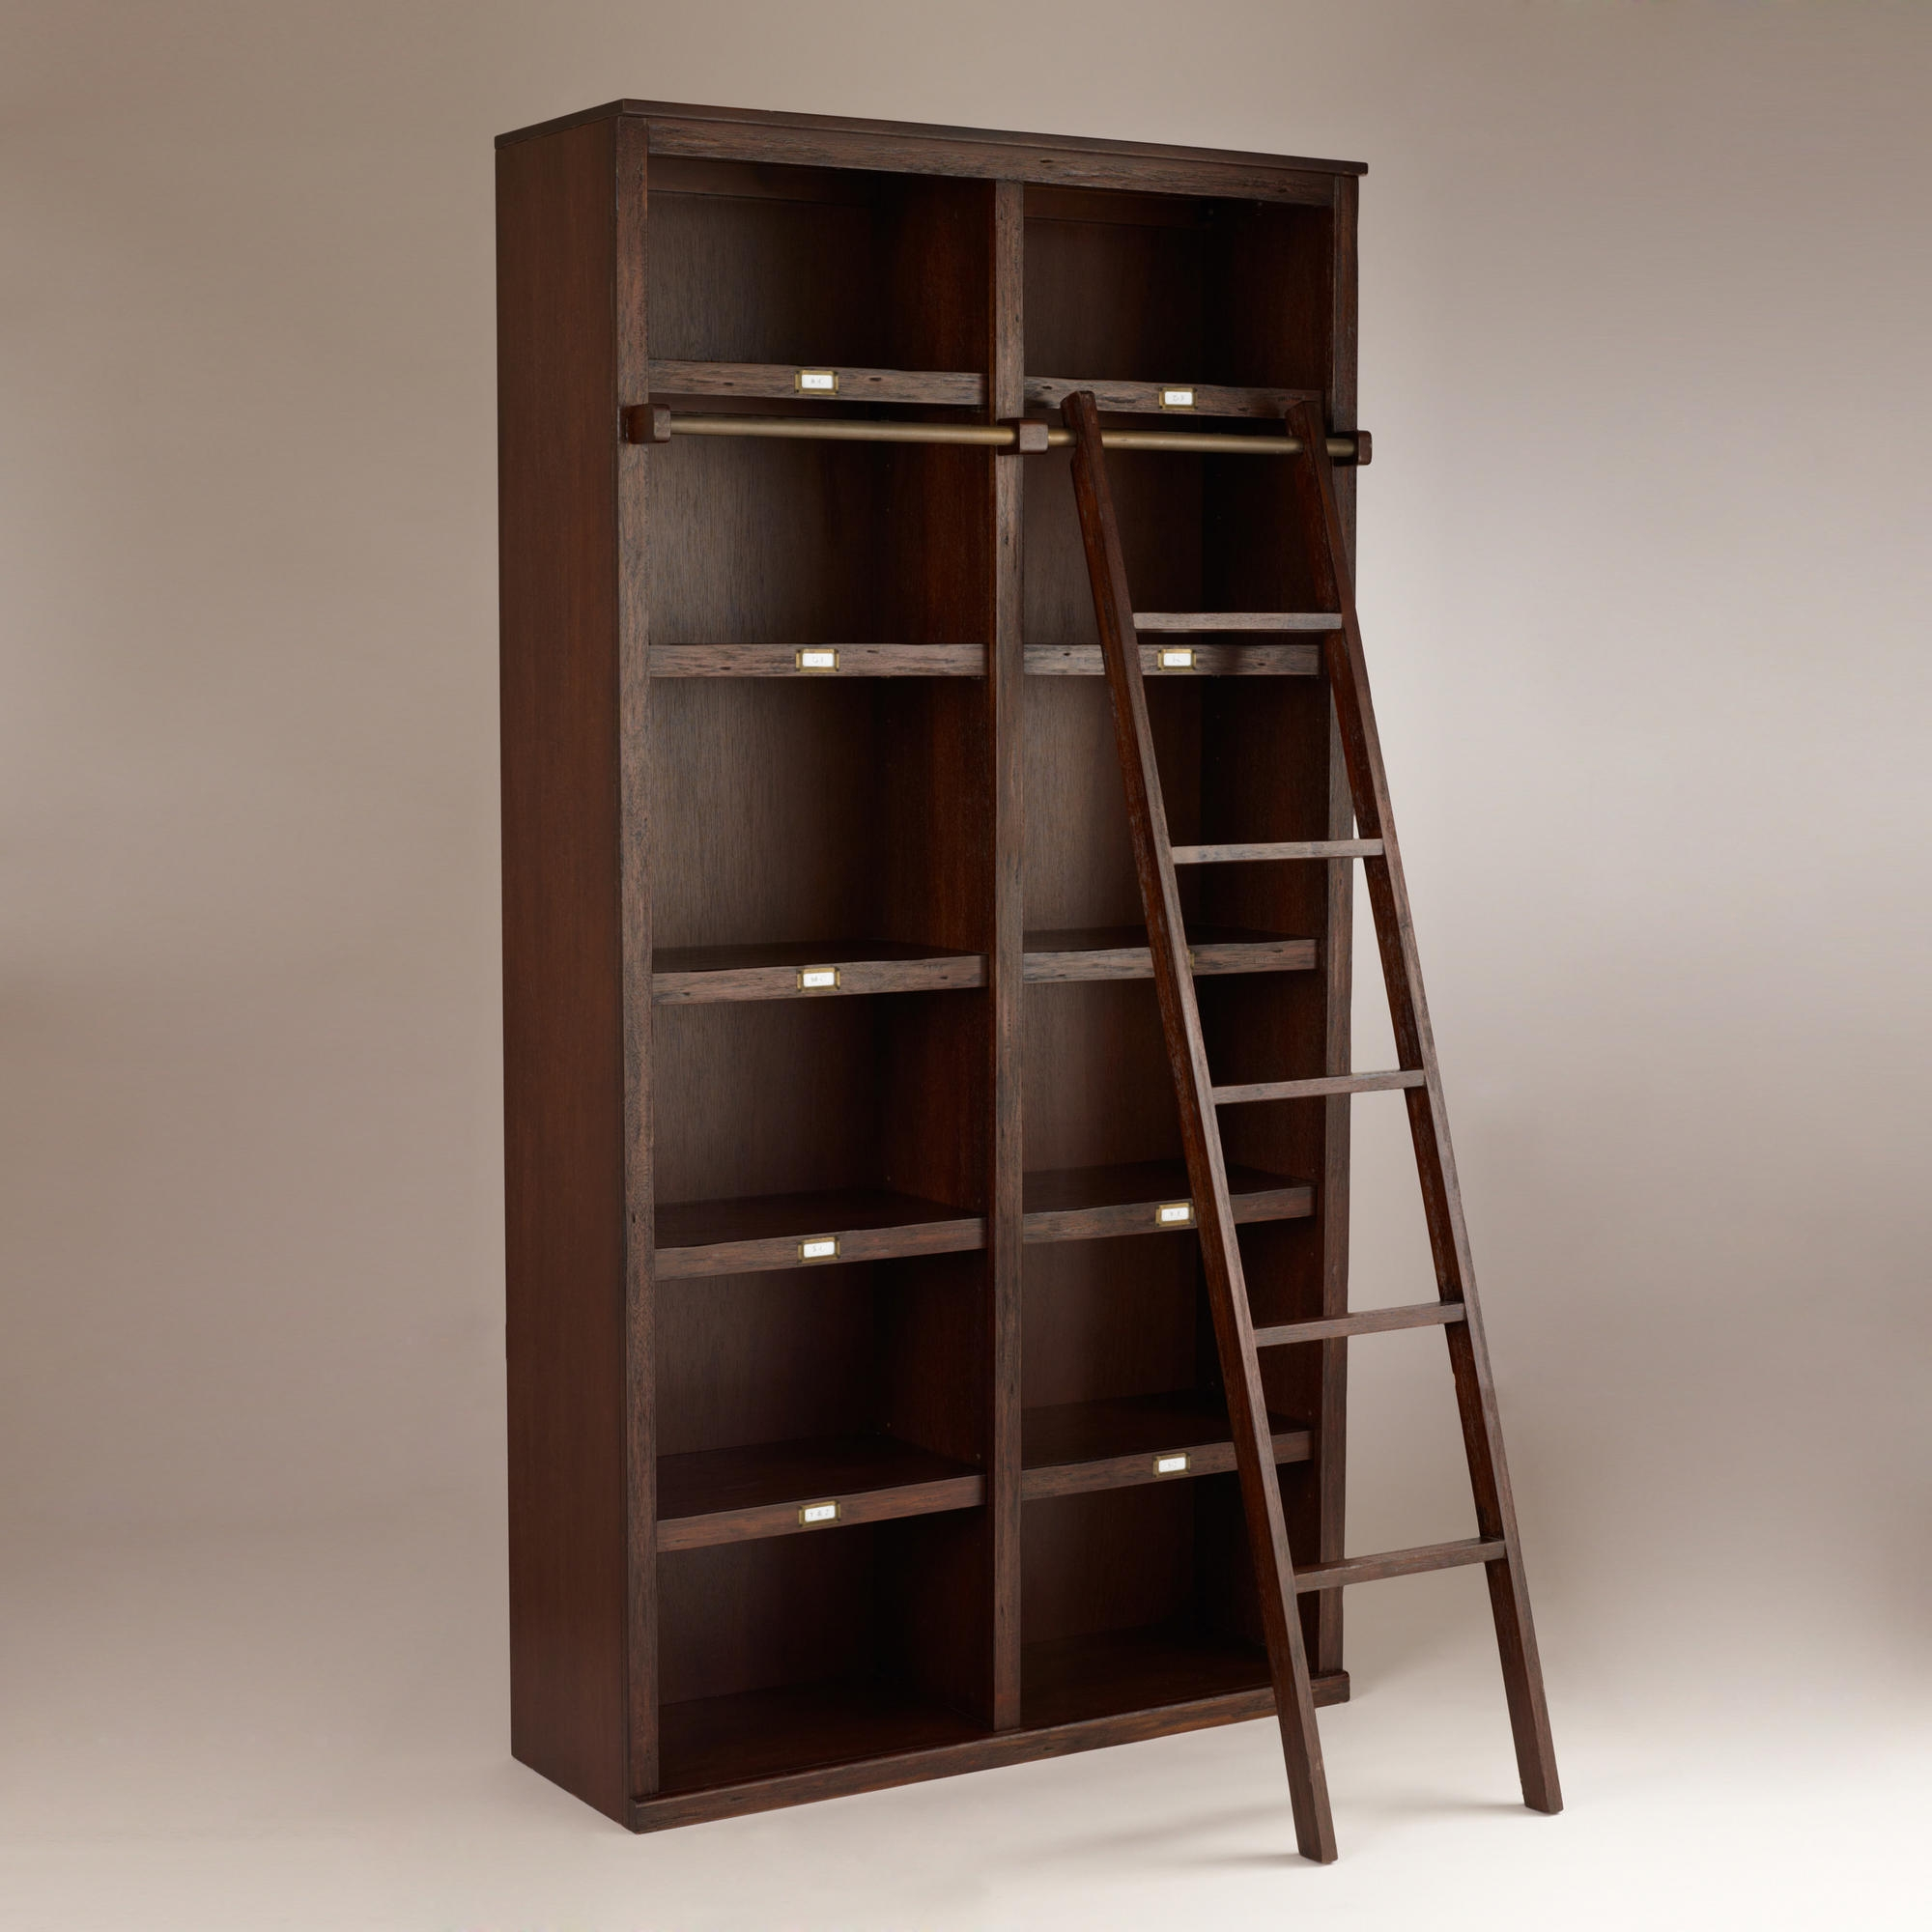 15 collection of wooden library ladders for Ikea wooden bookshelf